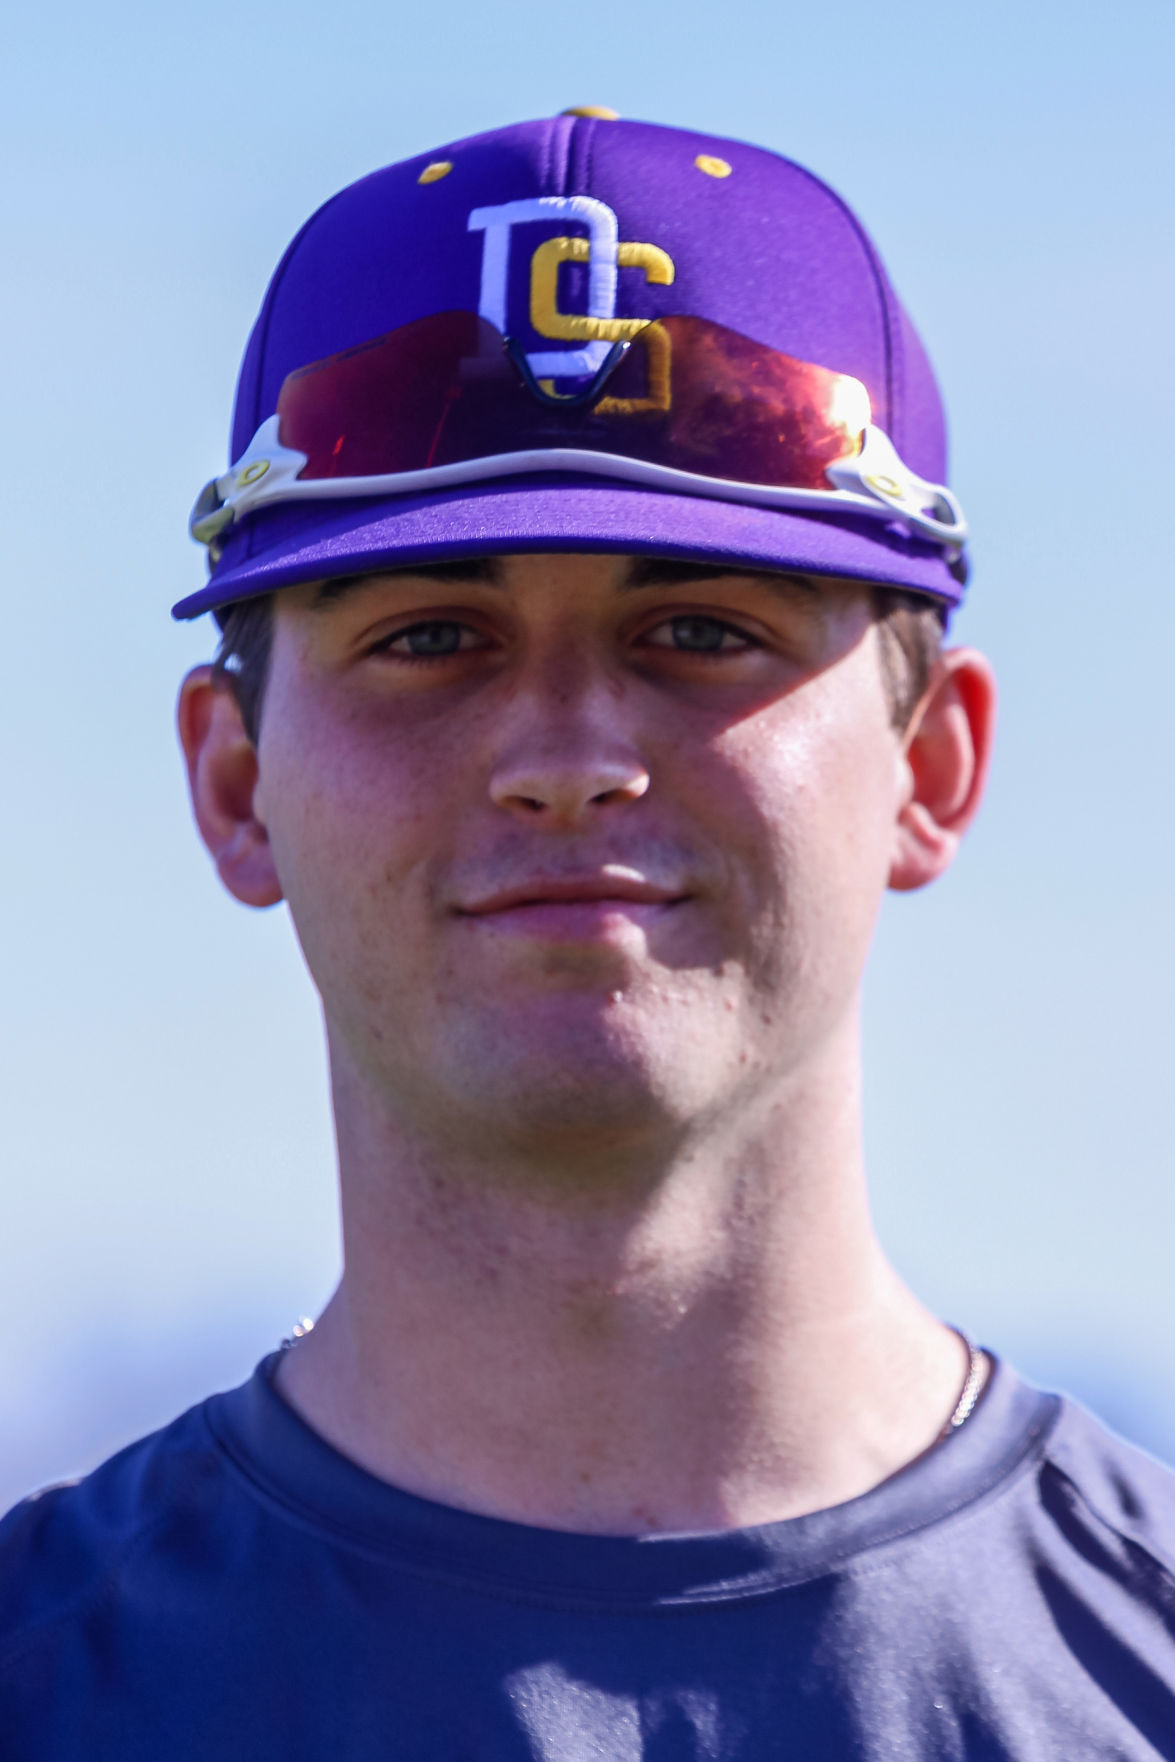 DSHS baseball head shots Chandler Pope (2018)